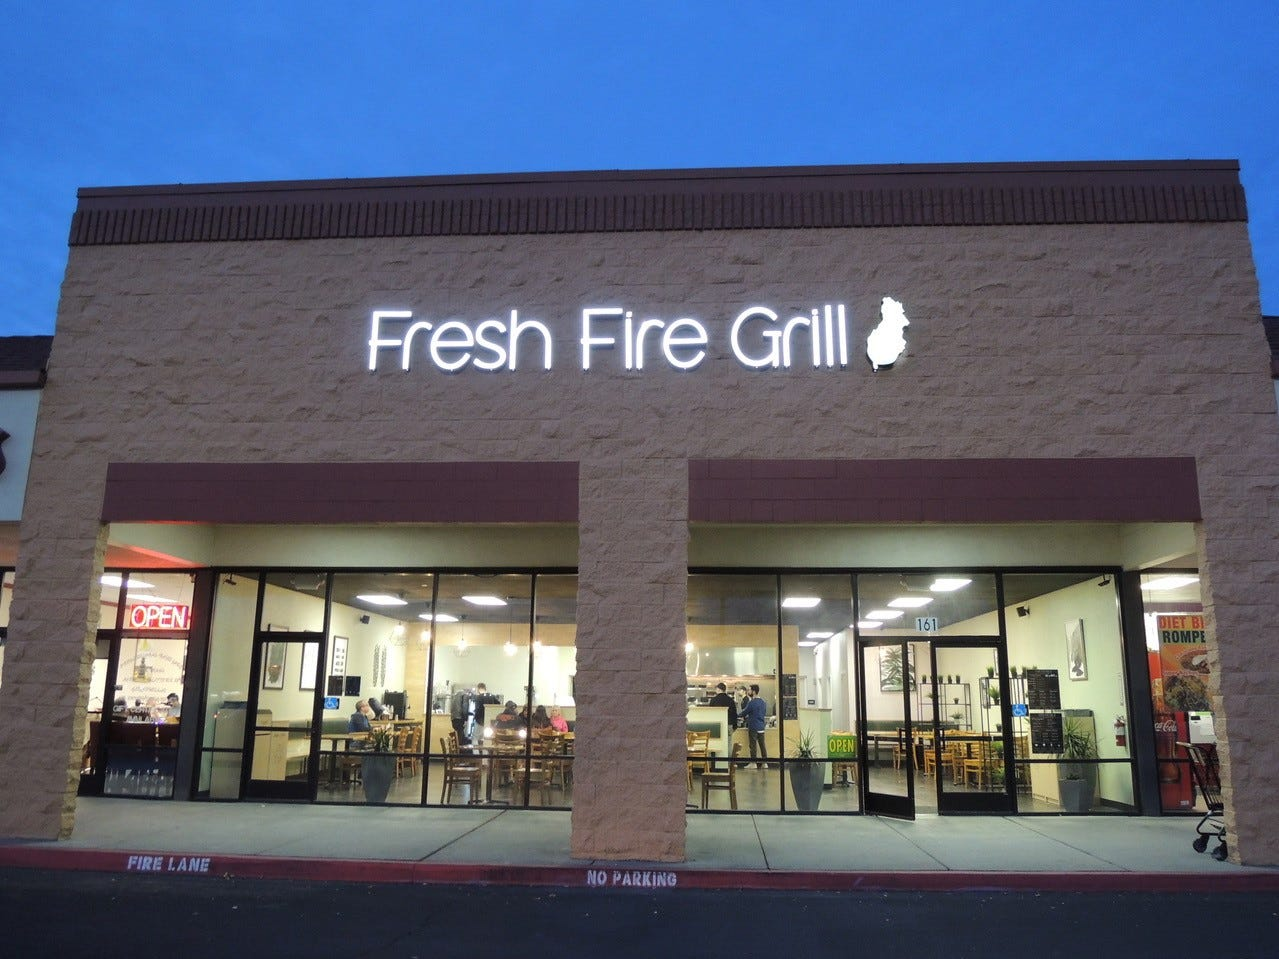 Entrance to the new Fresh Fire Grill in the Raley's/Shopko shopping center on Lake Boulevard